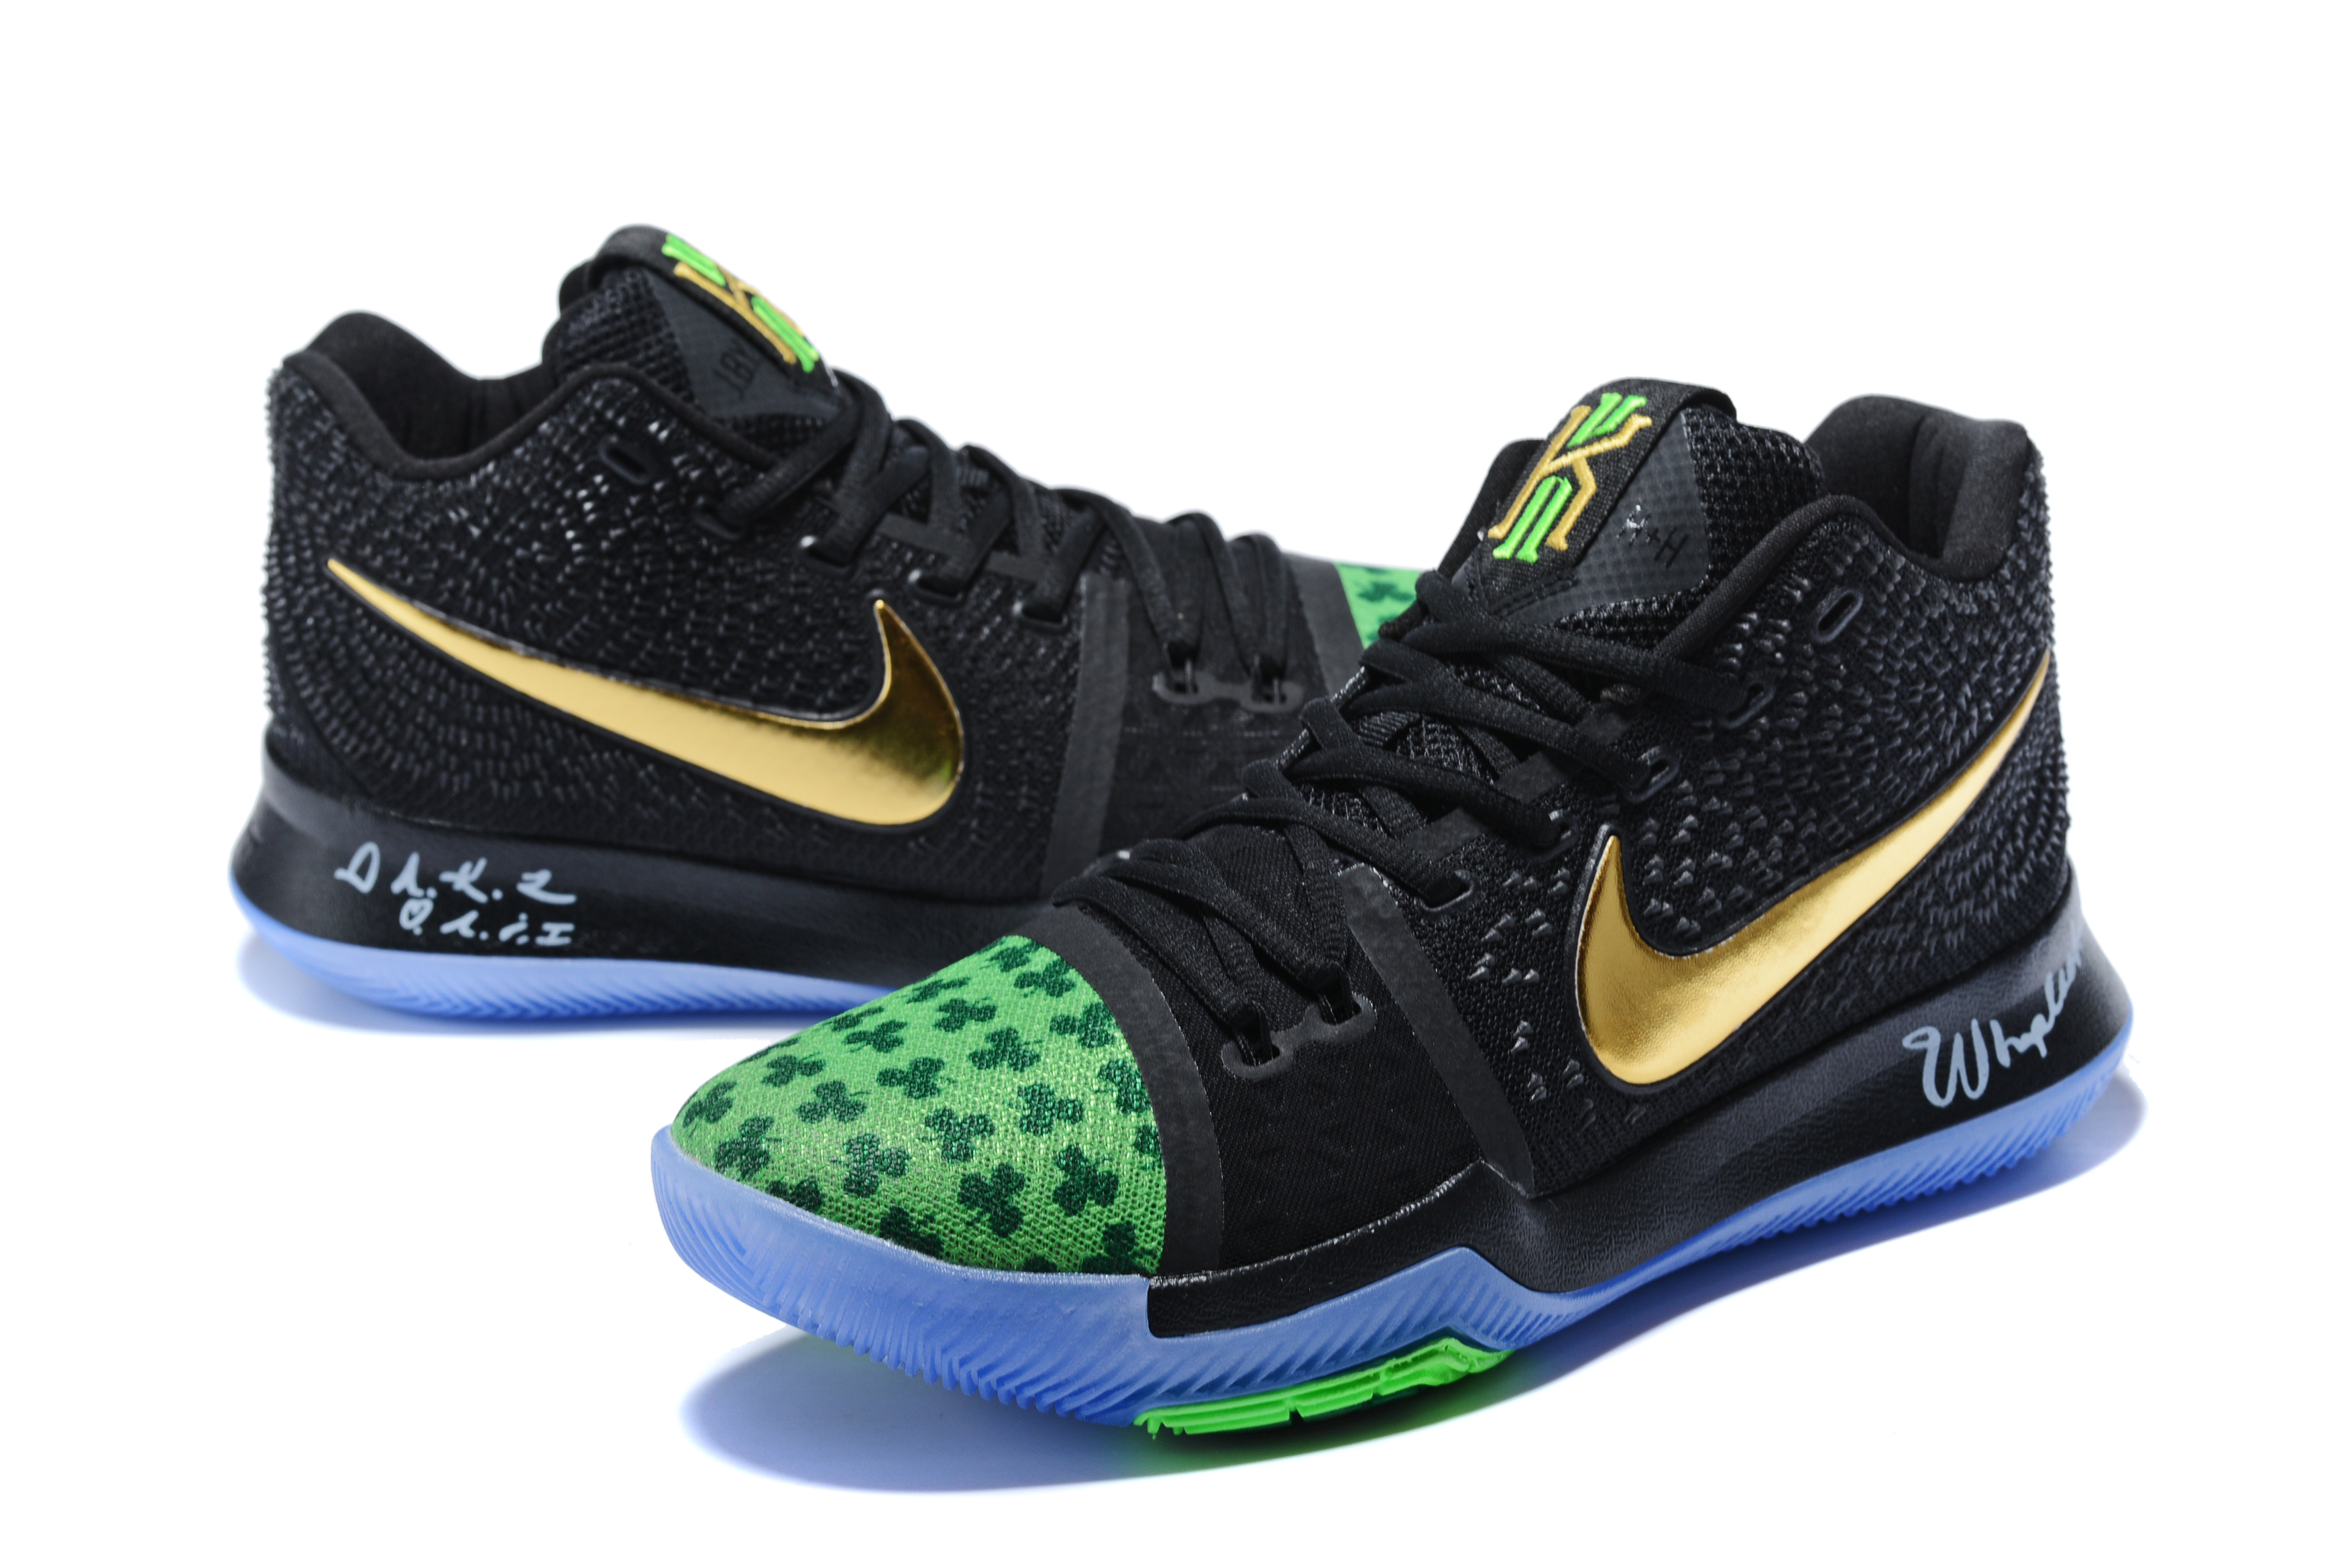 Nike Kyire Irving 3 Clover Theme Shoes